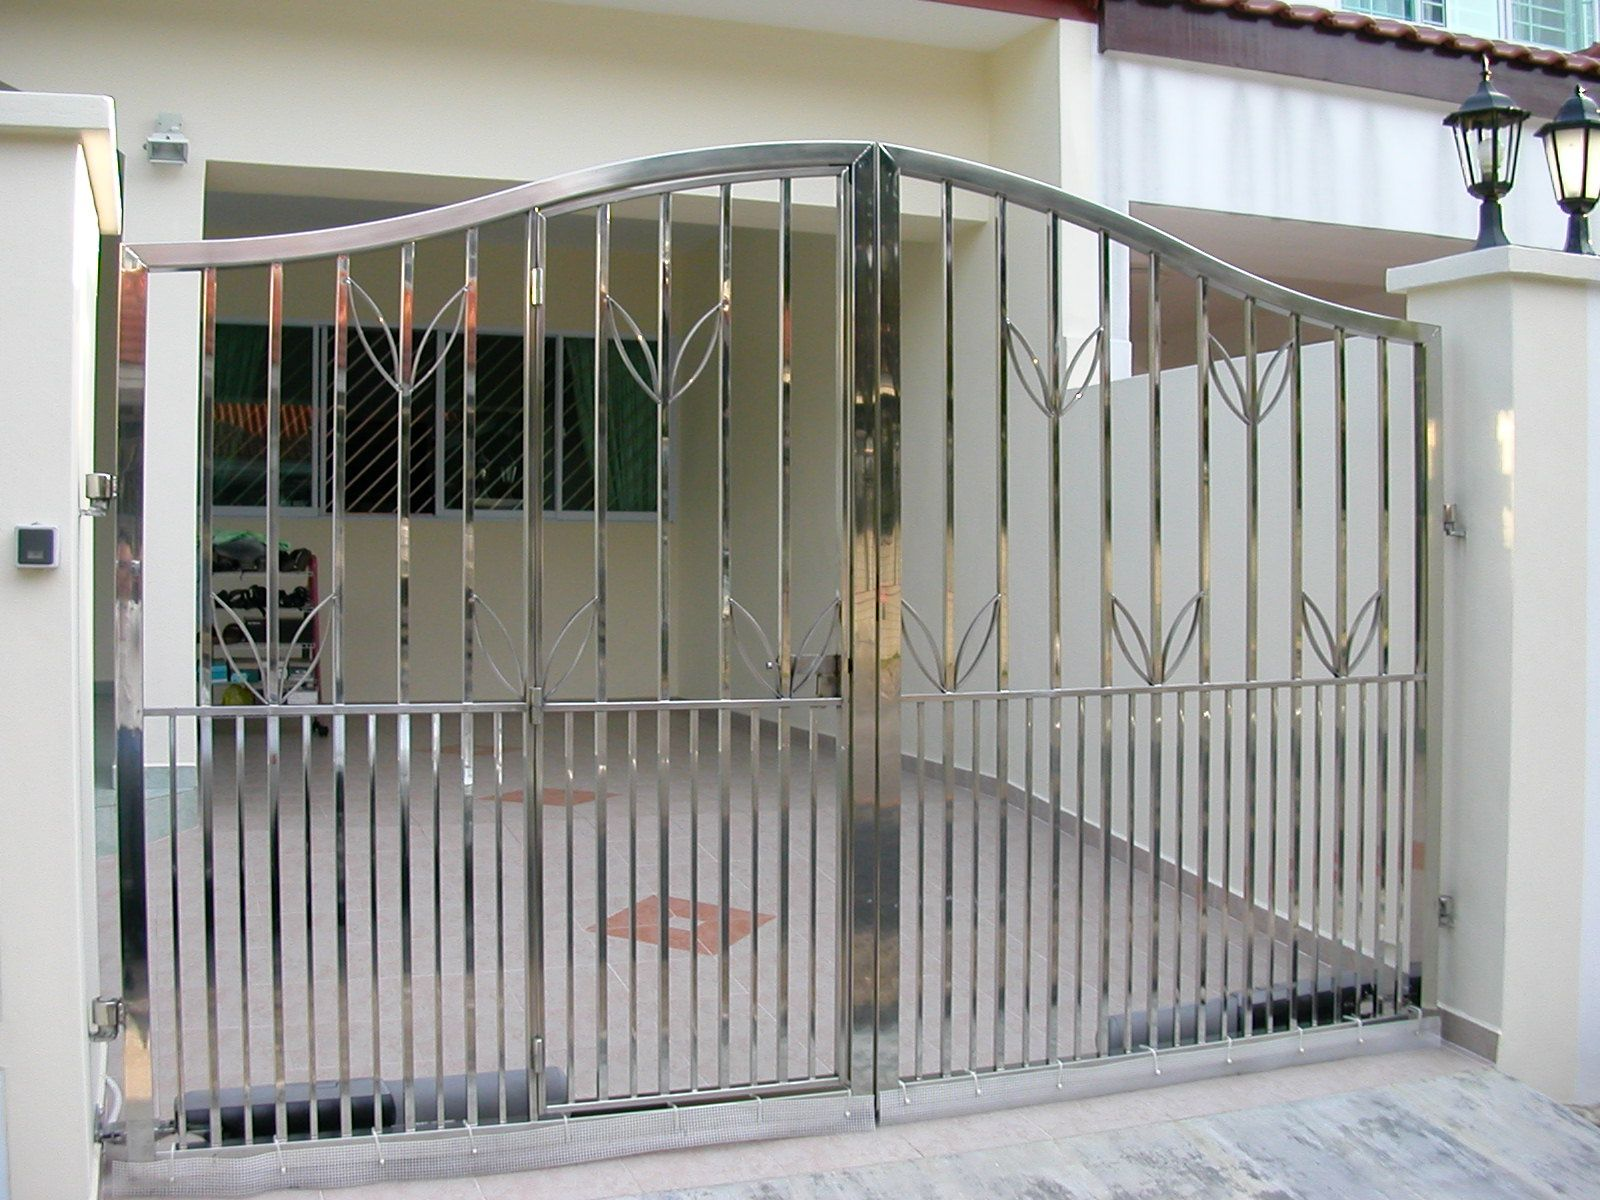 Steel Gates Picture 2 Of 14 Stainless Steel Main Gate With | Steel Gates And Stairs | Dreamstime | Handrail | Stainless Steel | Fence Gate | Egress